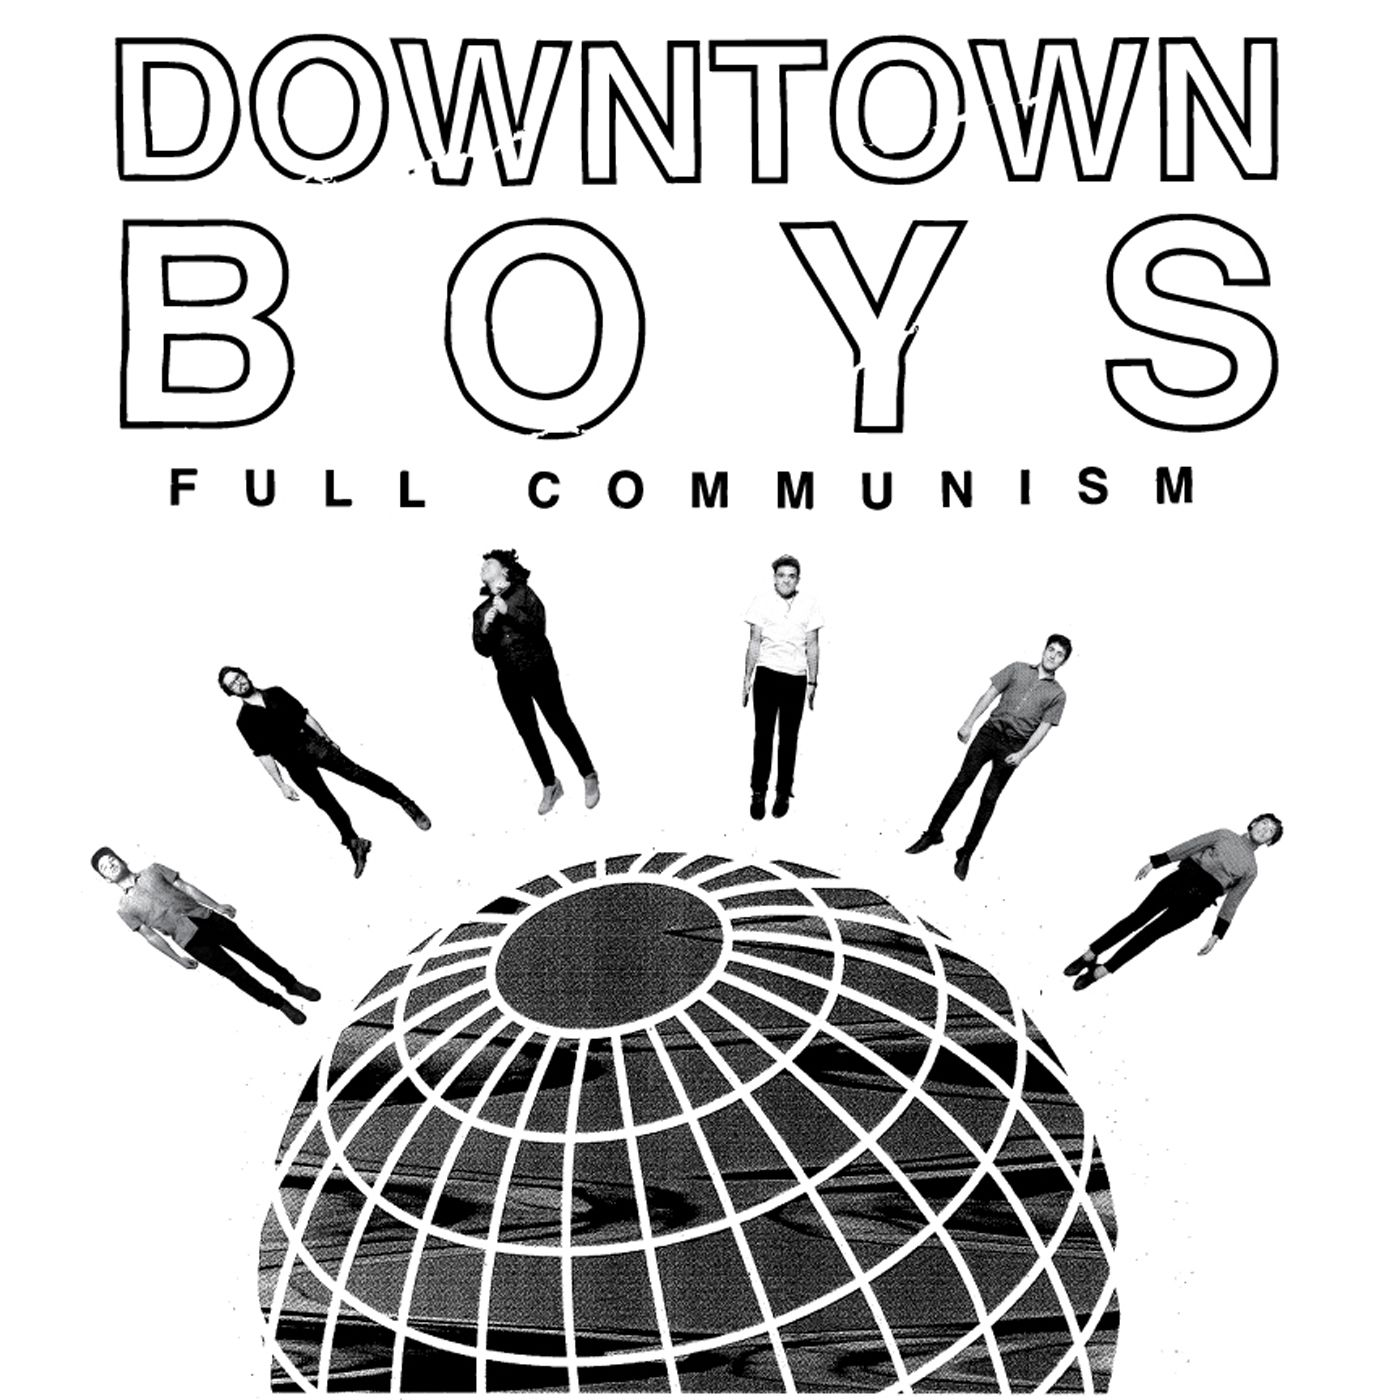 Downtown Boys Full Communism (Don Giovanni Records